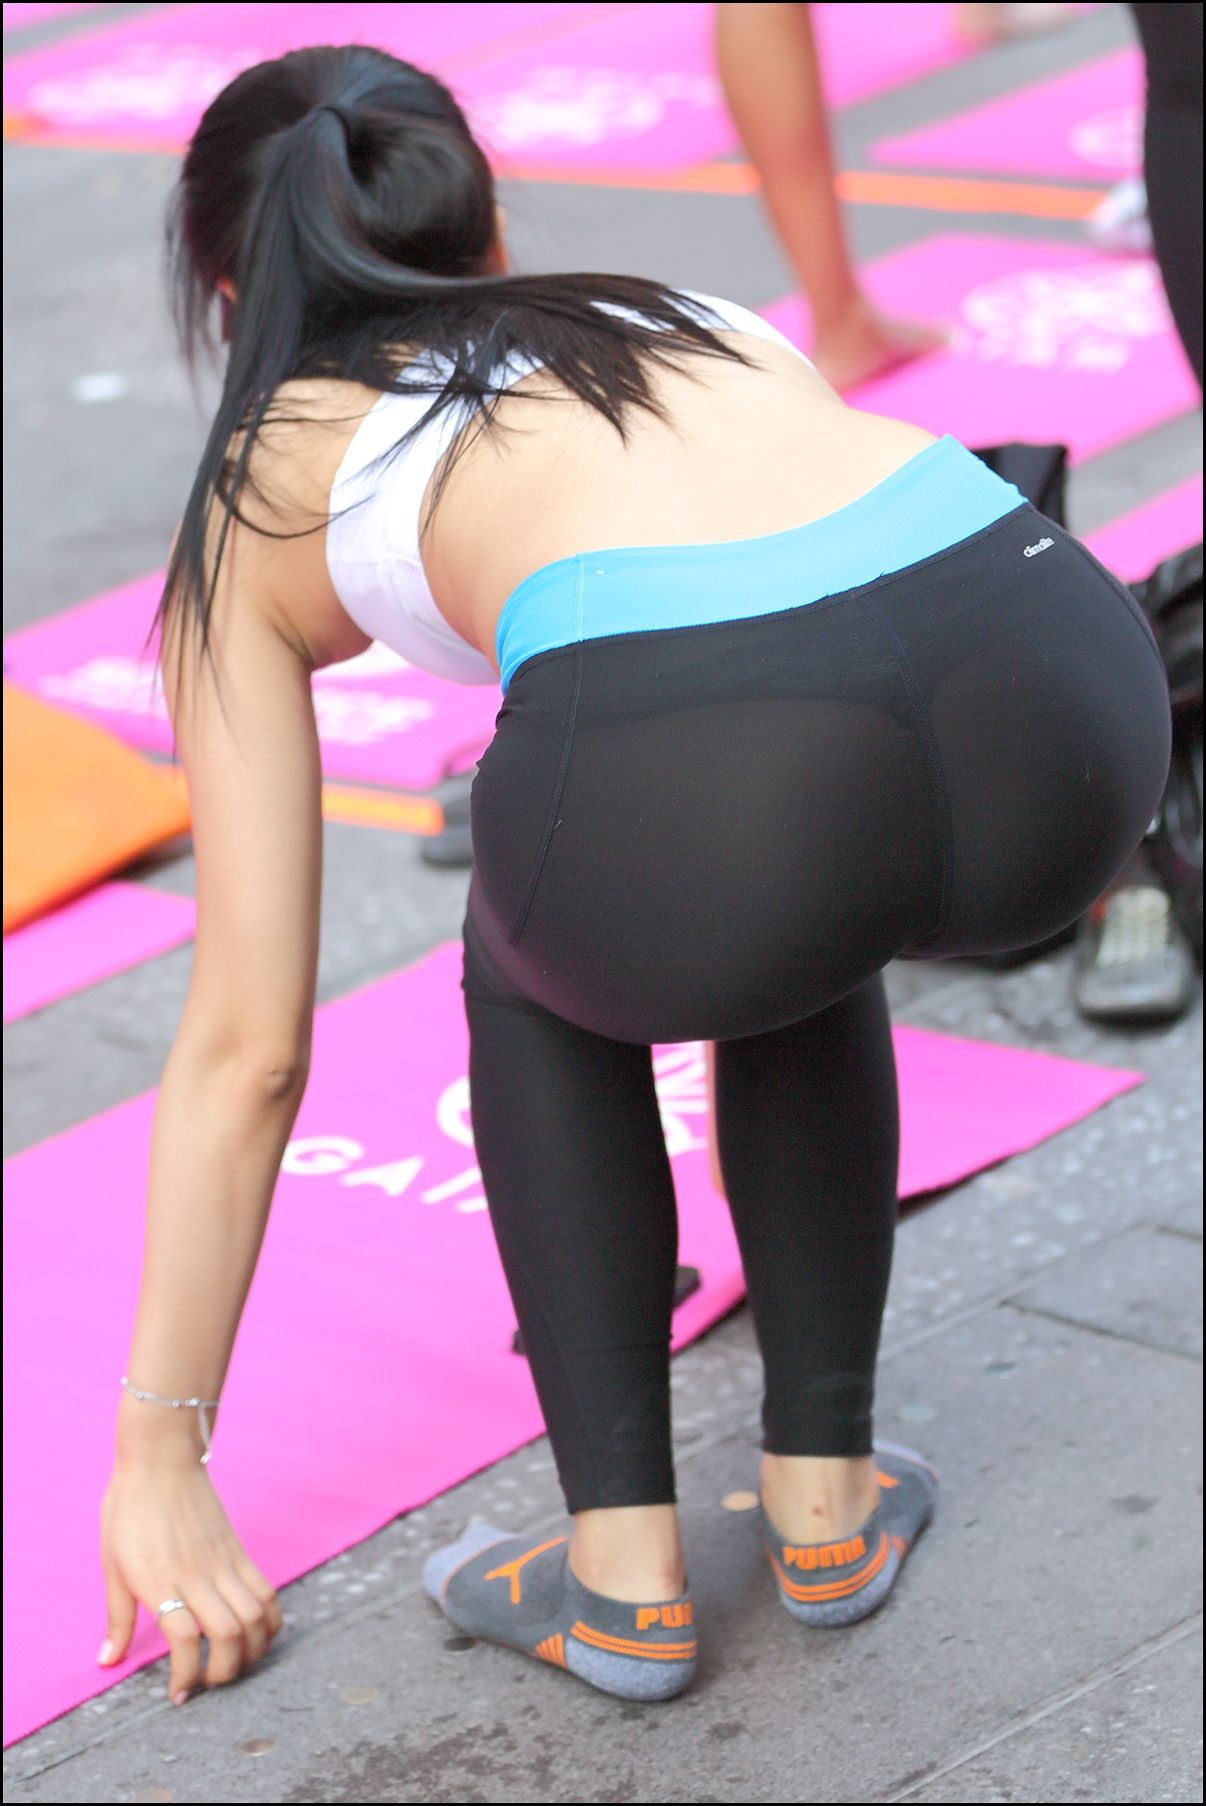 the world of spandex and yoga pants | best of bootie | pinterest